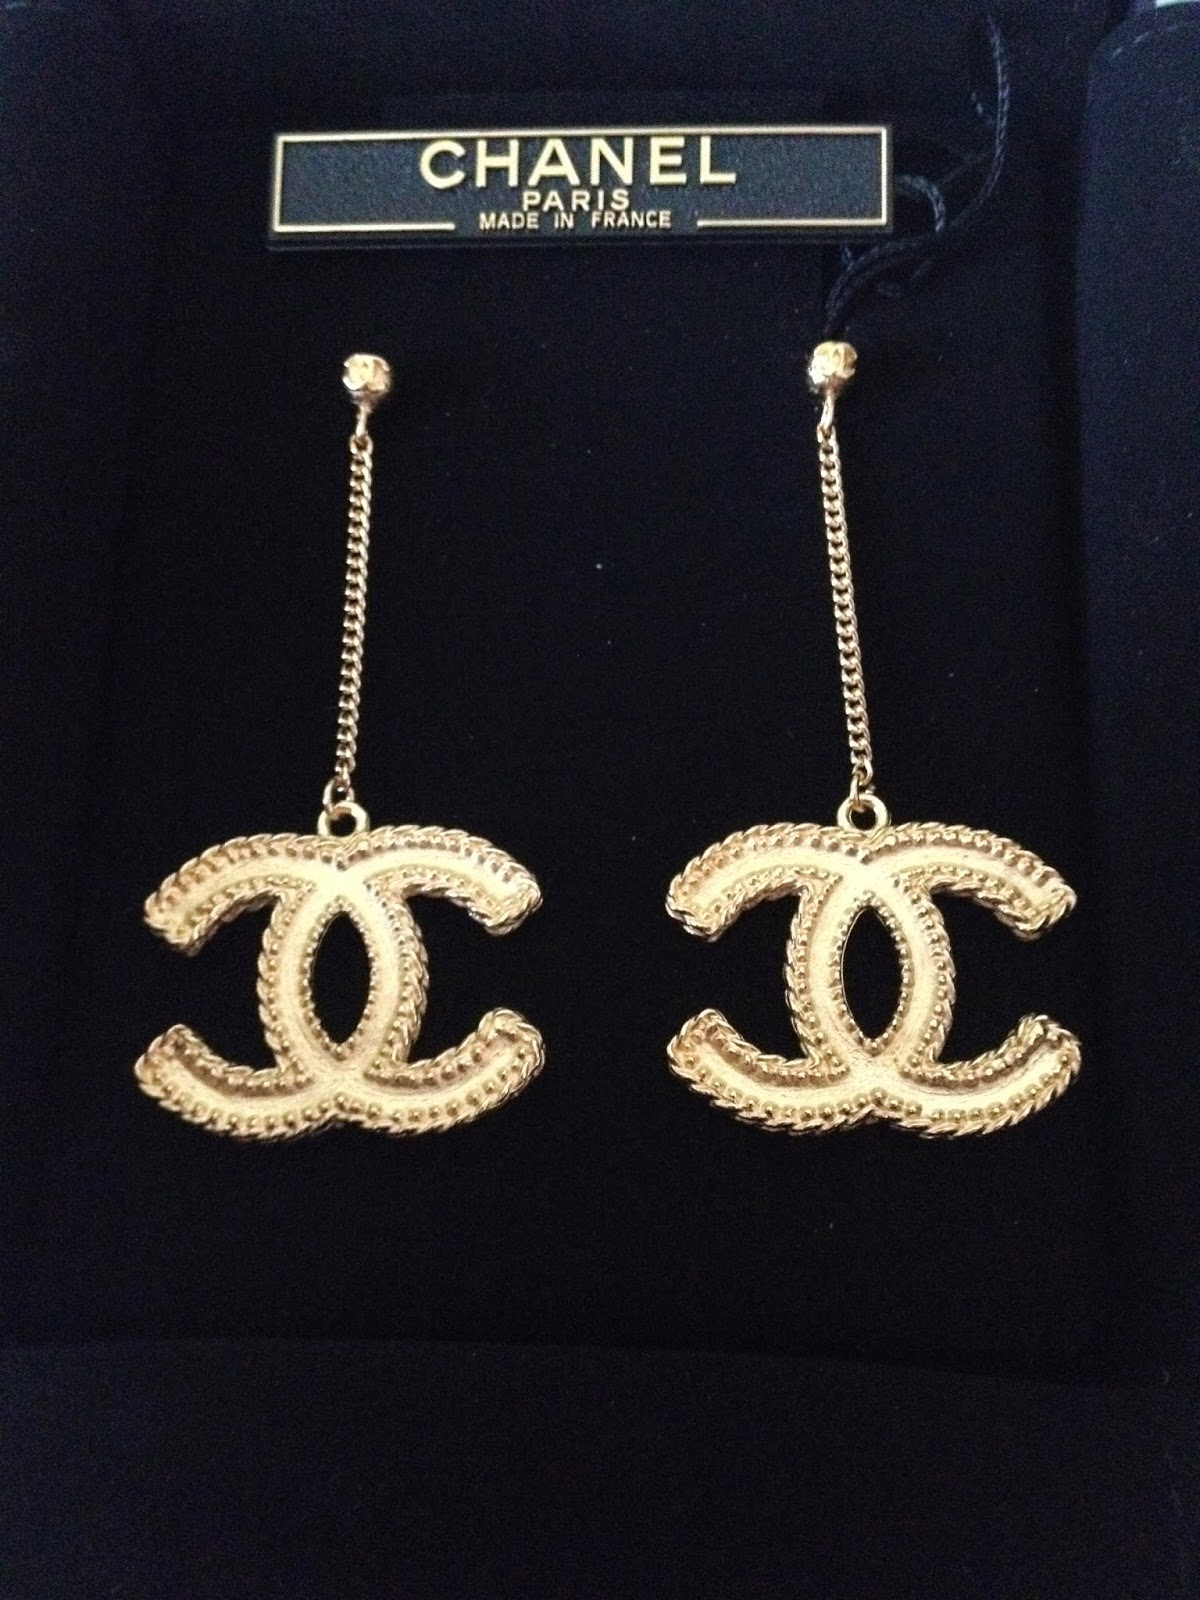 Chanel Earrings Fashion Jewelry Chanel Earrings LARGE CC LOGO